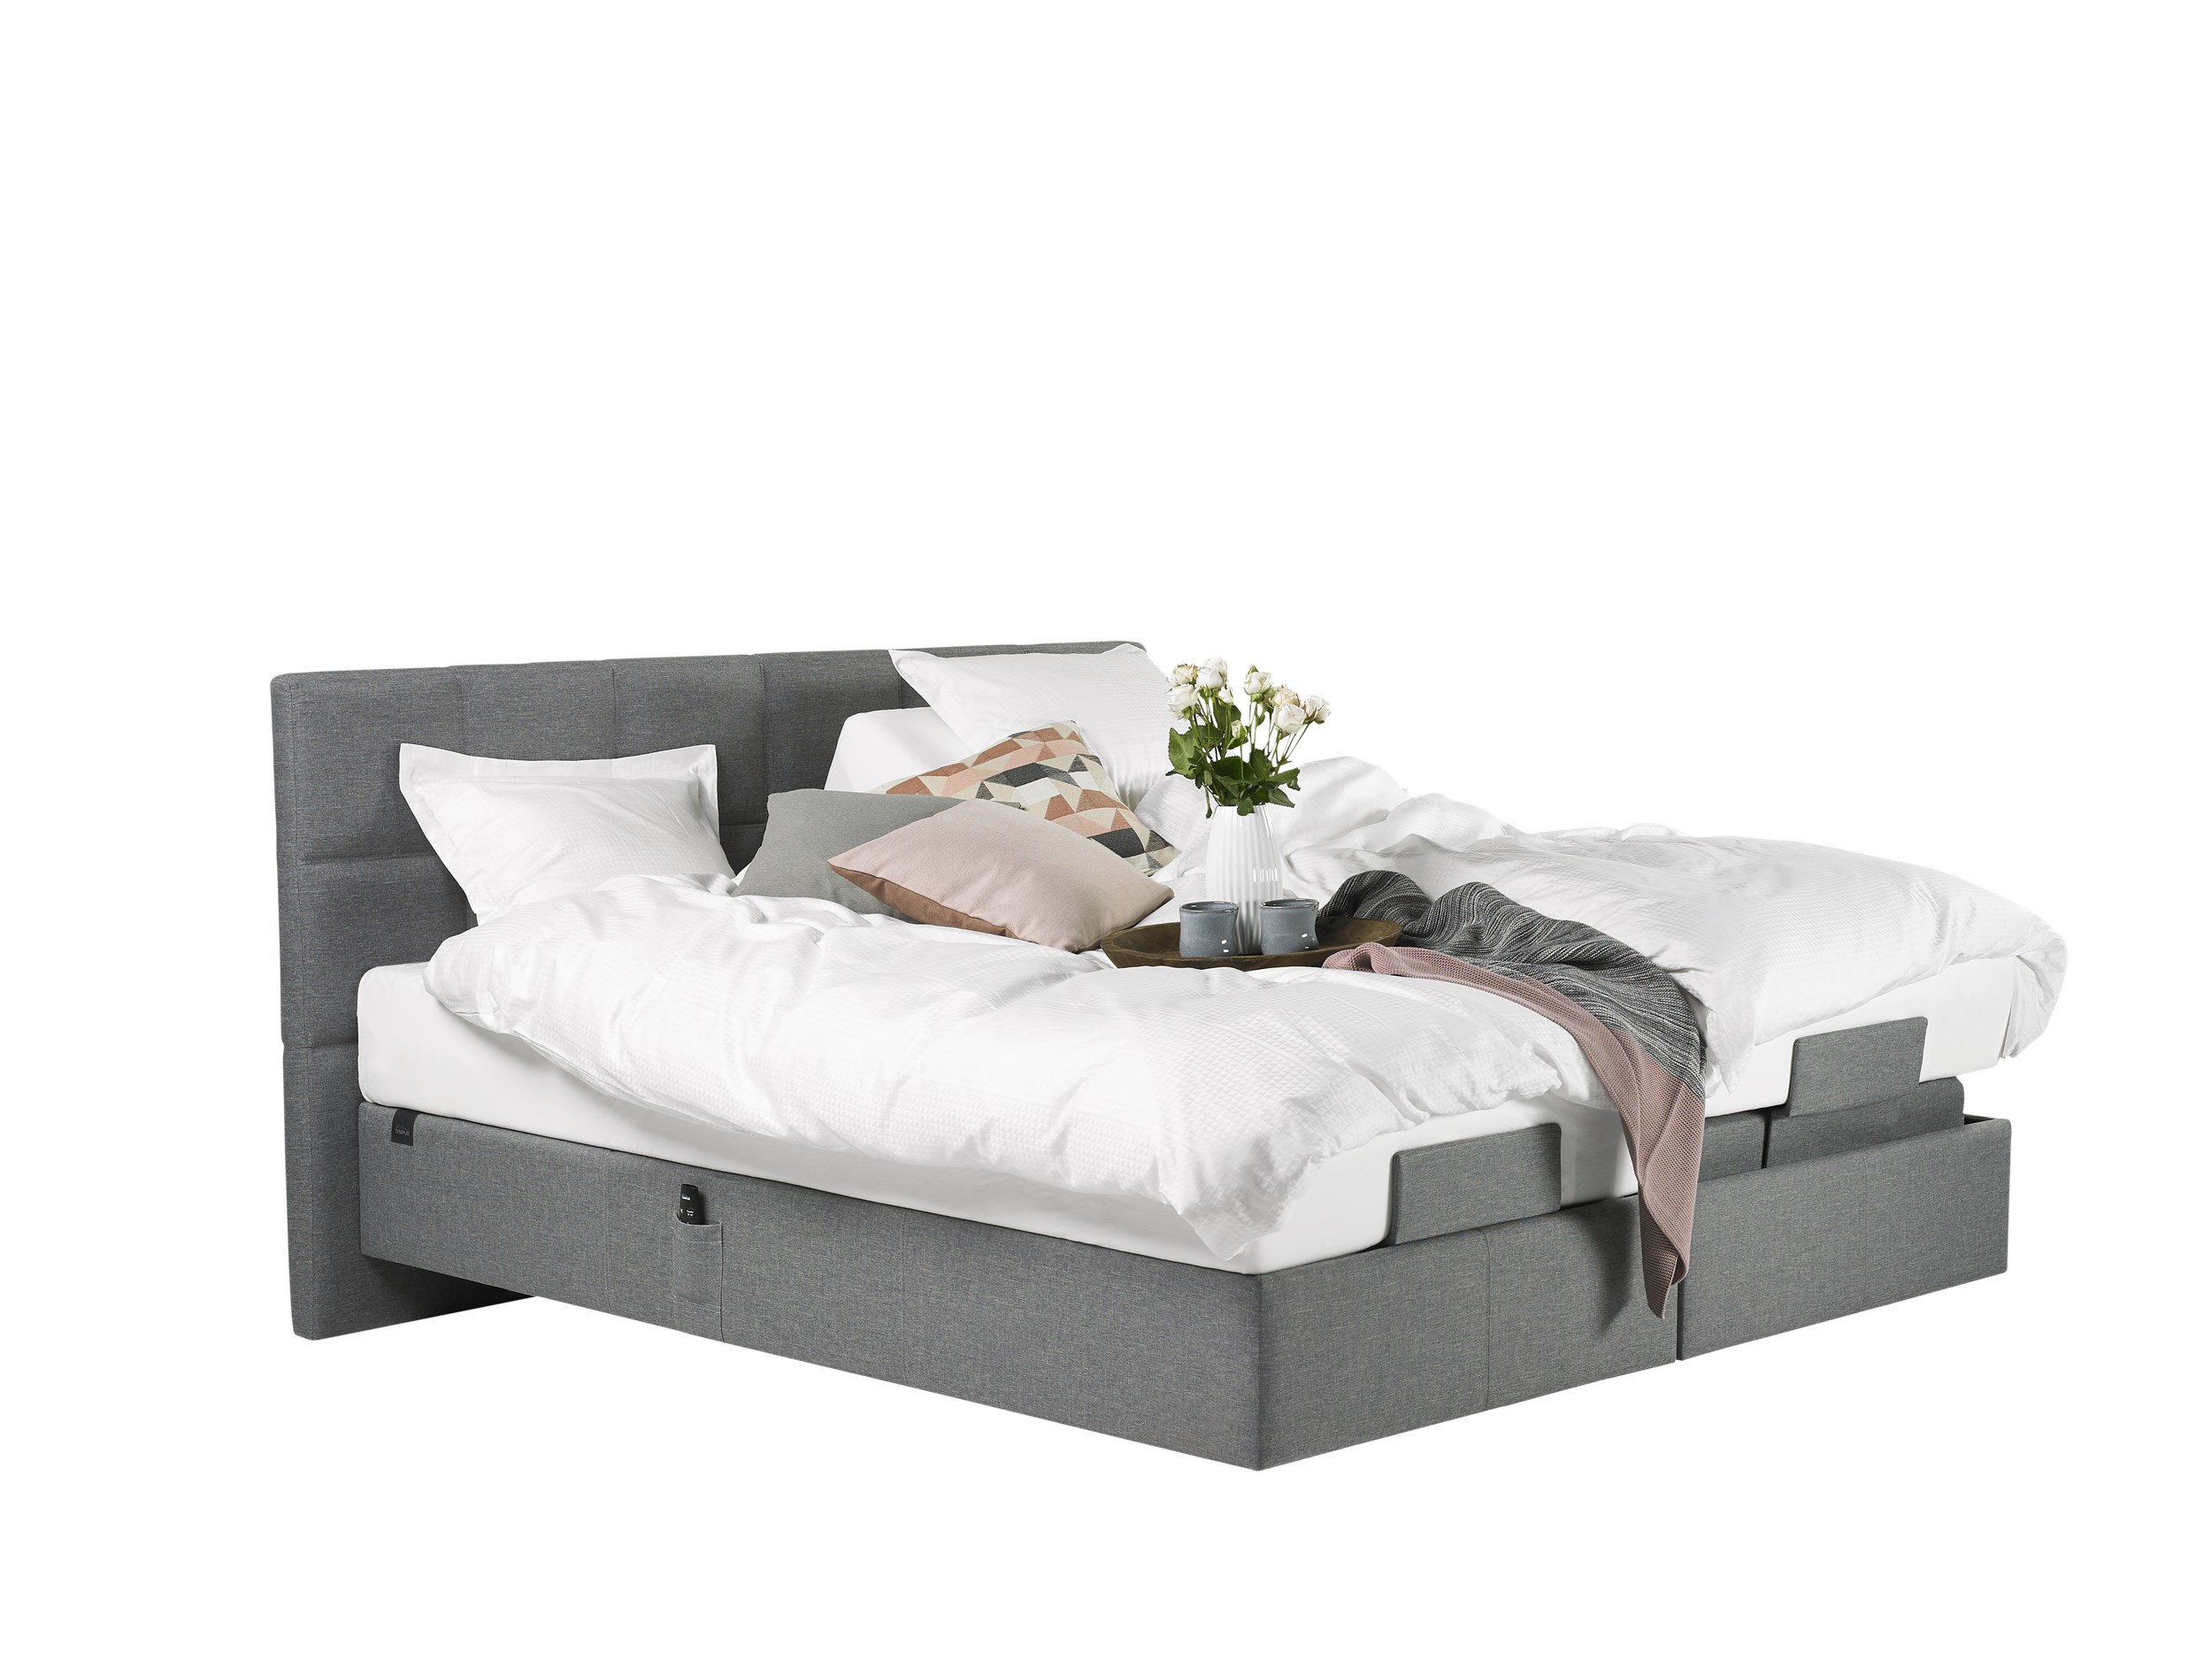 Tempur Spring Box Adjustable Elevationsseng 180 x 200 cm